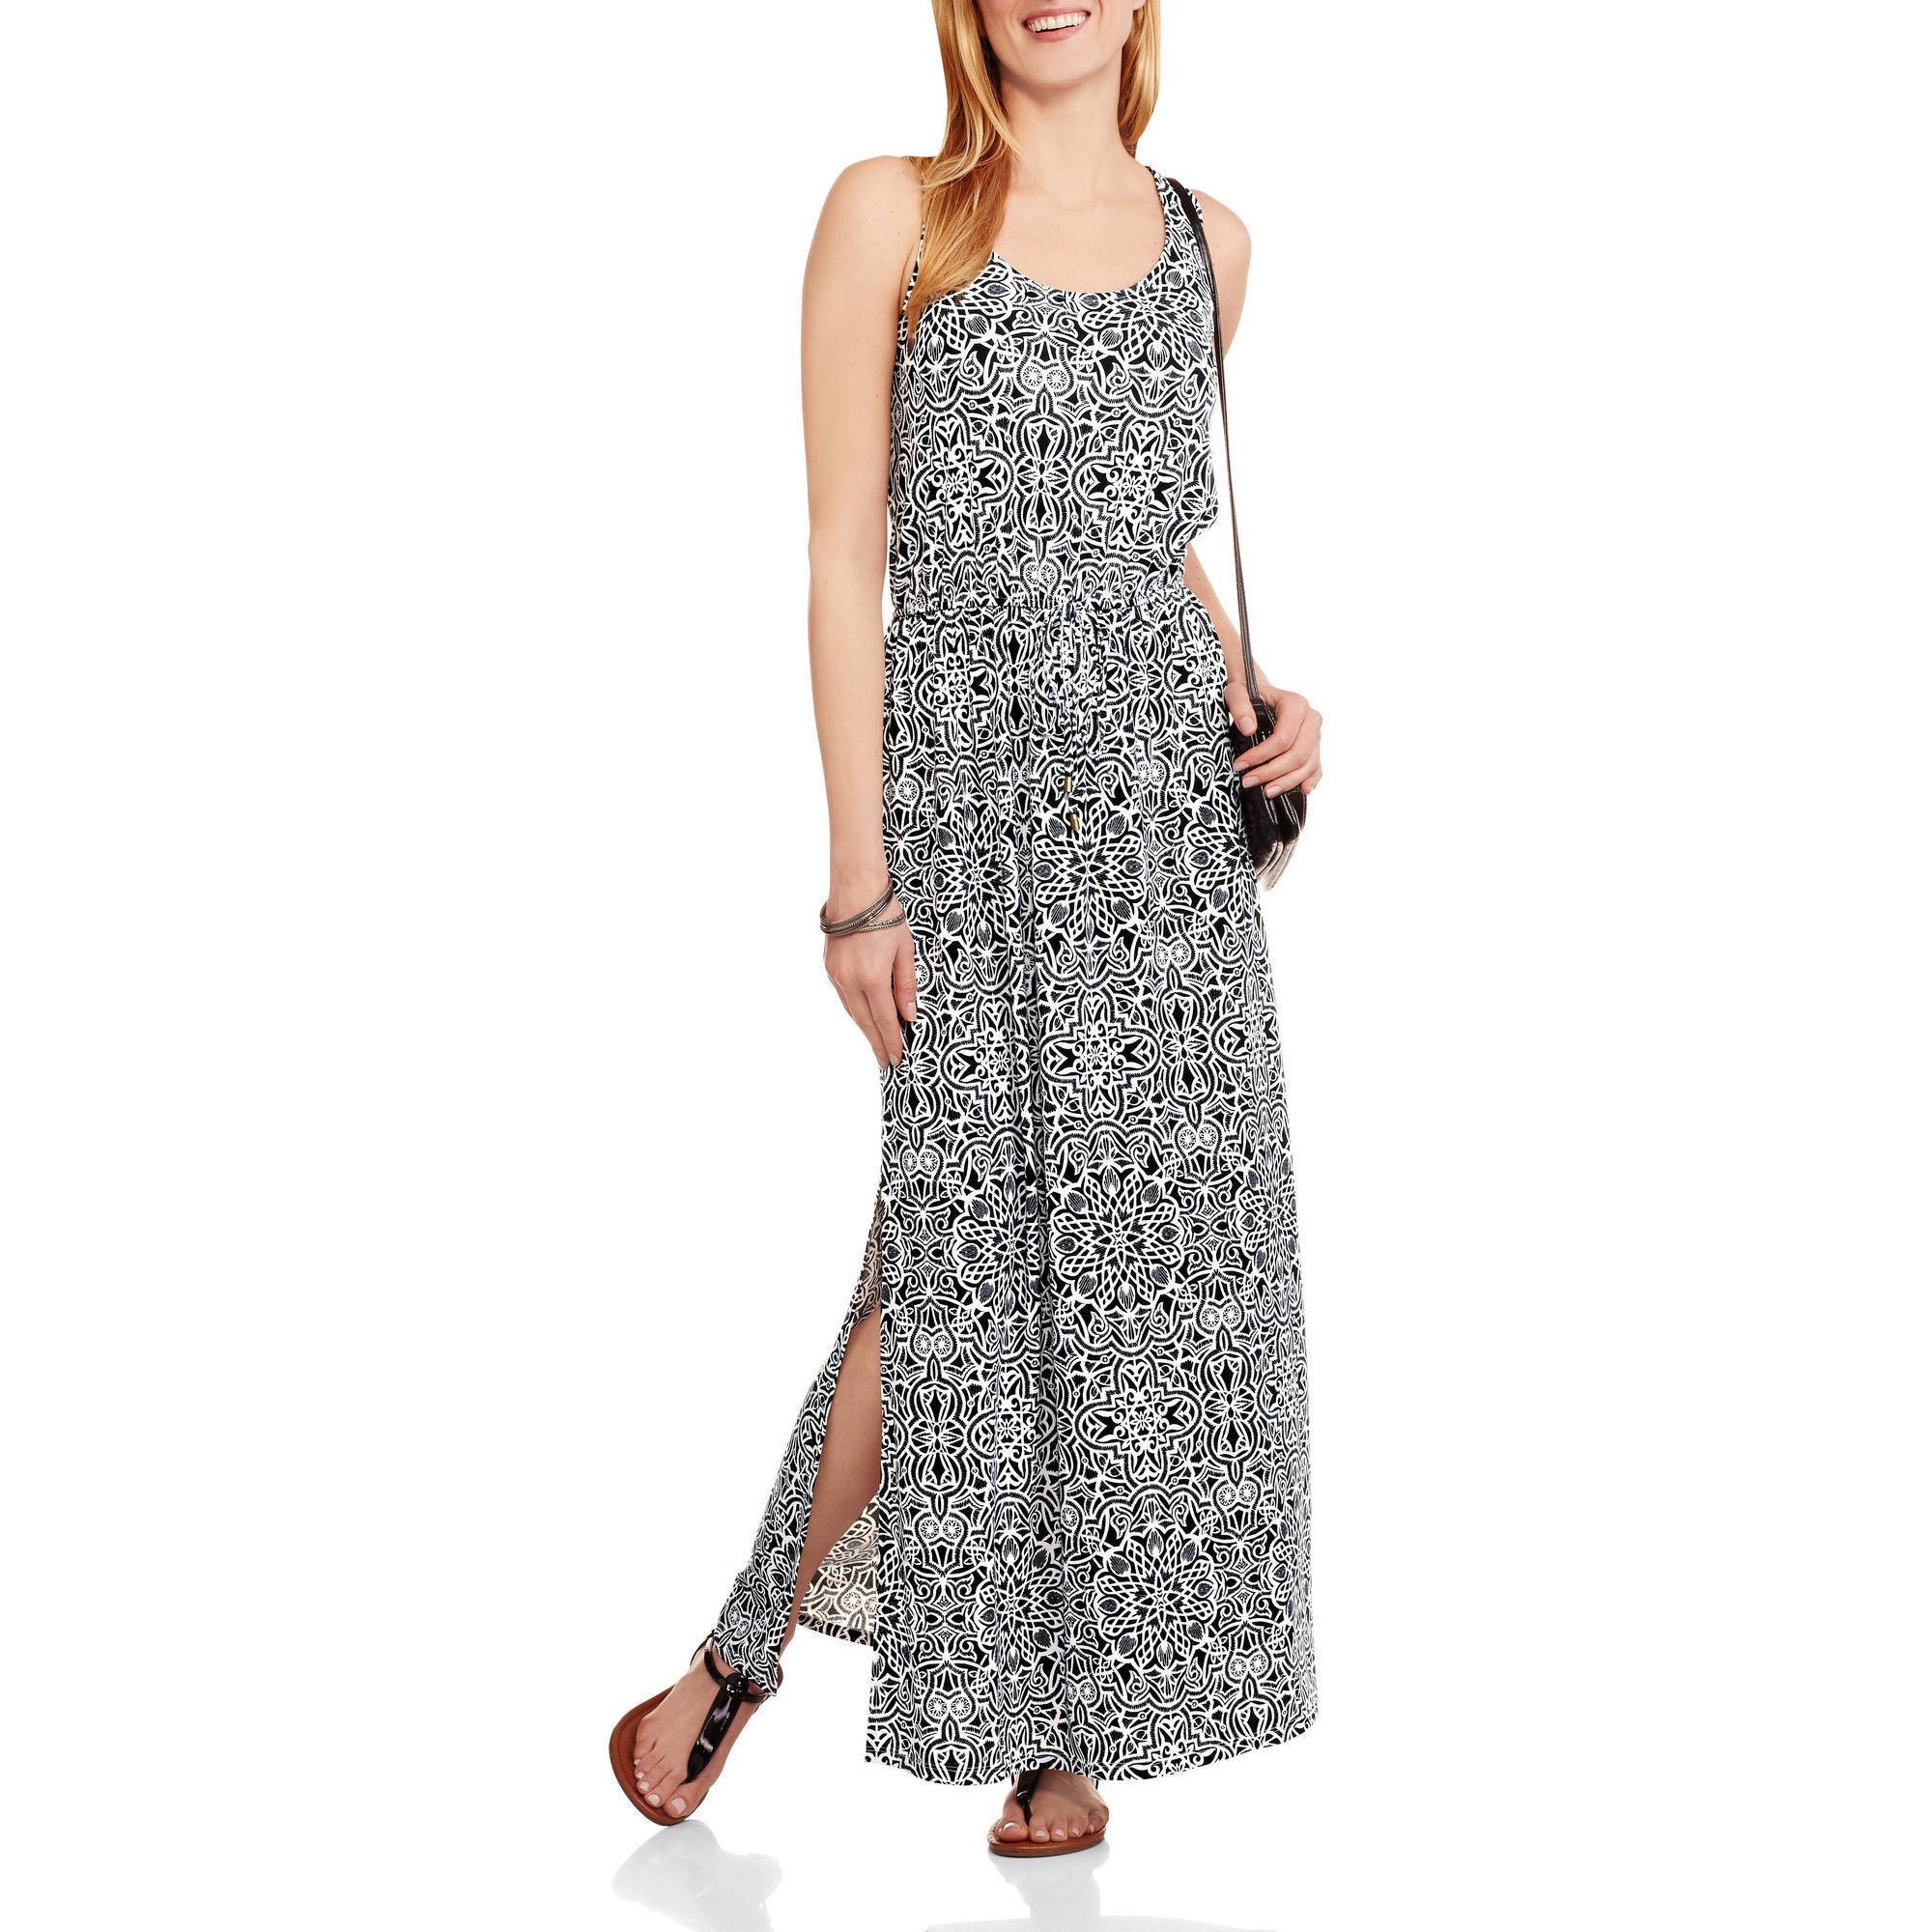 Faded Glory Women's Scoop Neck Waist Tie Maxi Dress with Side Slits